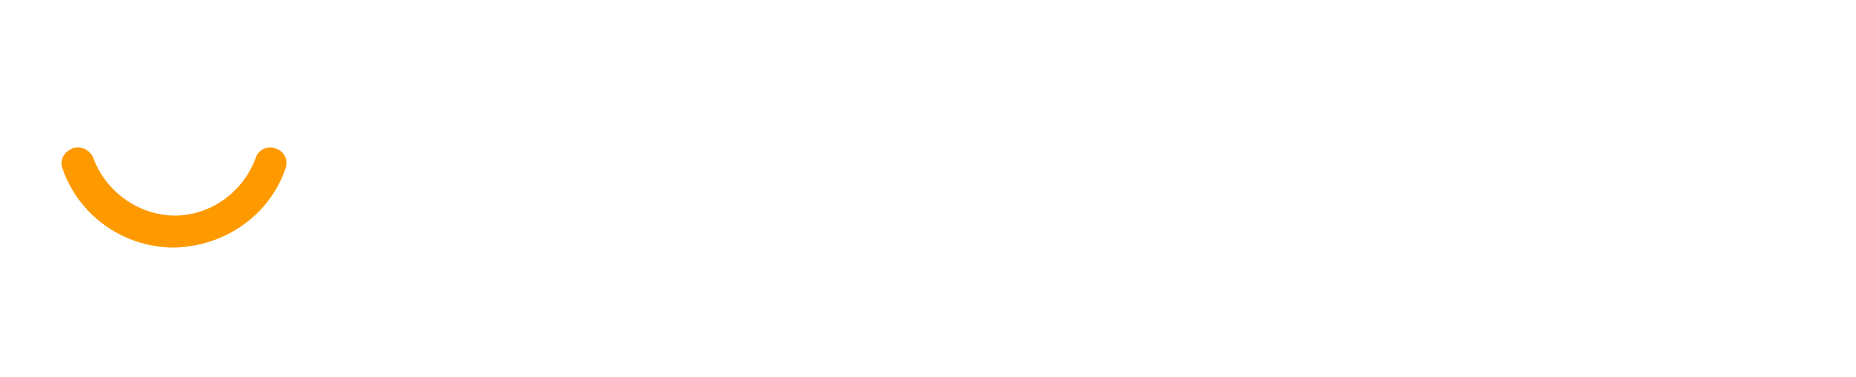 smileback-logo-2019-horizontal-white